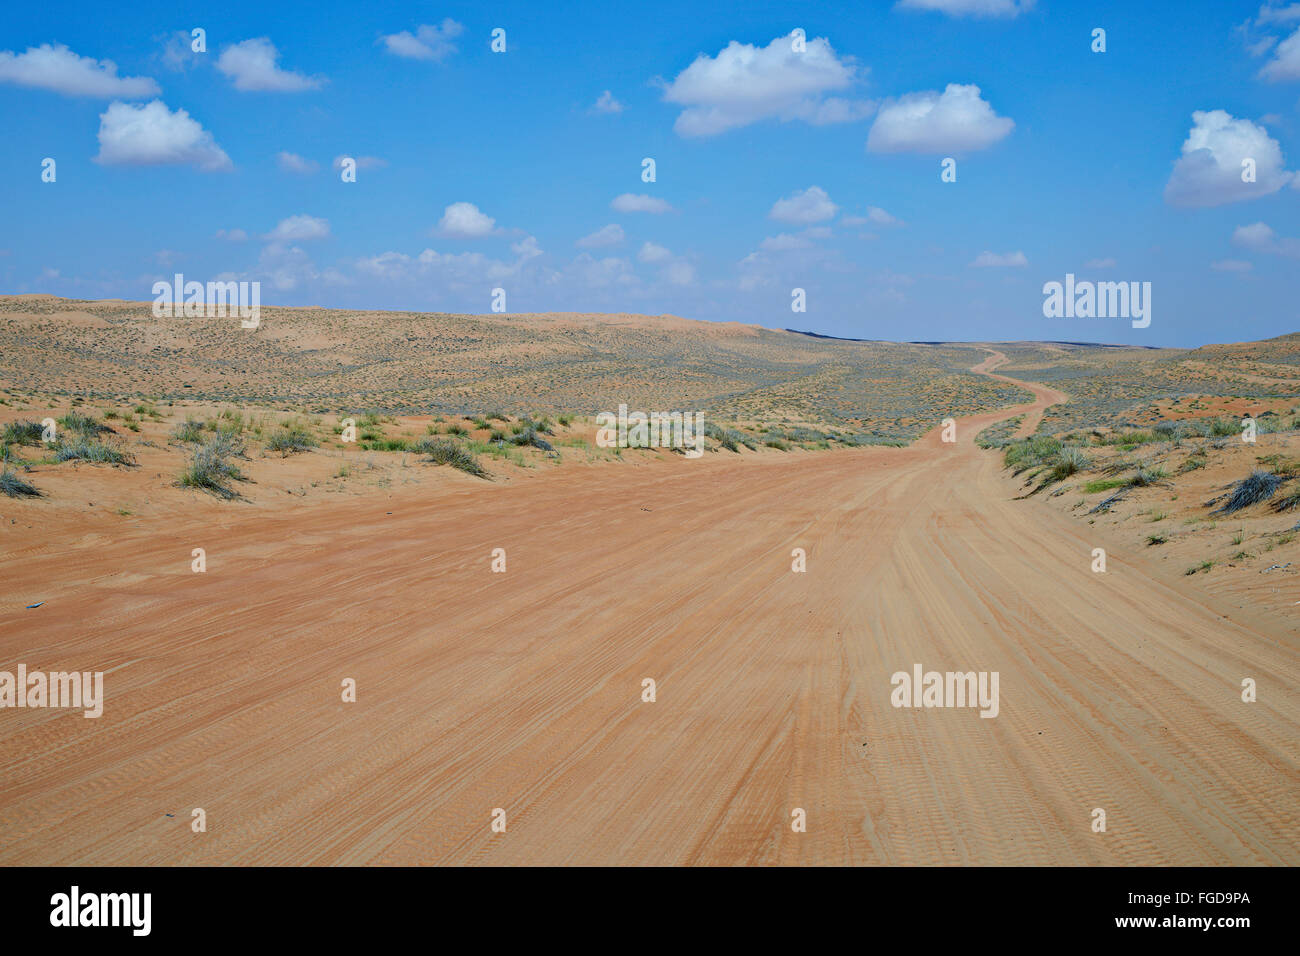 Desert road to Wahiba Sands, one of the most popular tourisit destinations in Oman. - Stock Image